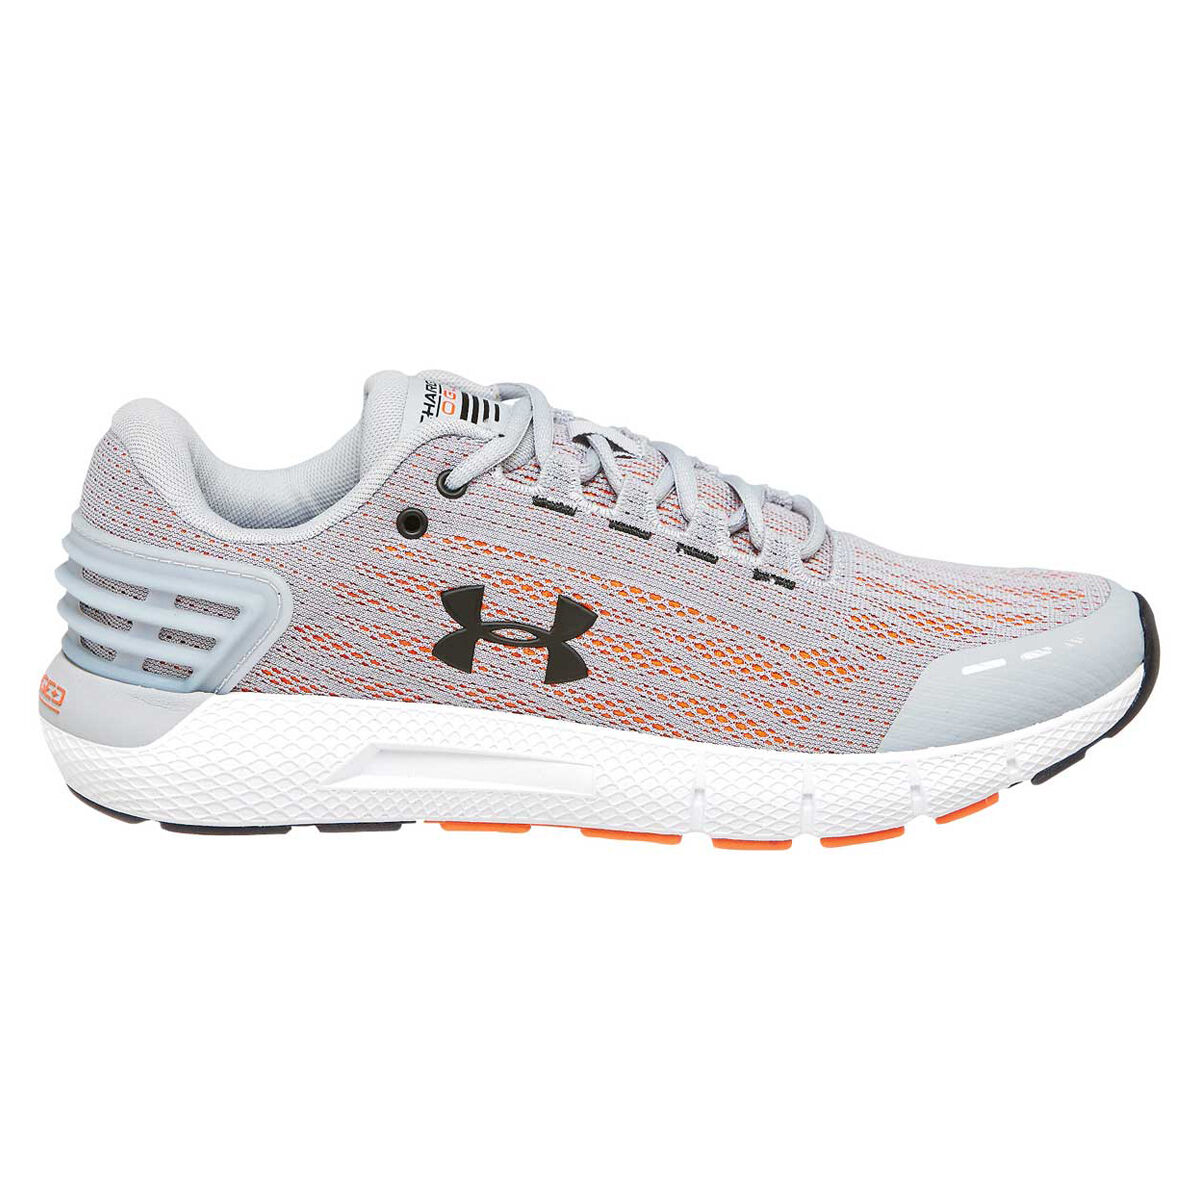 Under Armour Charged Rogue Mens Running Shoes